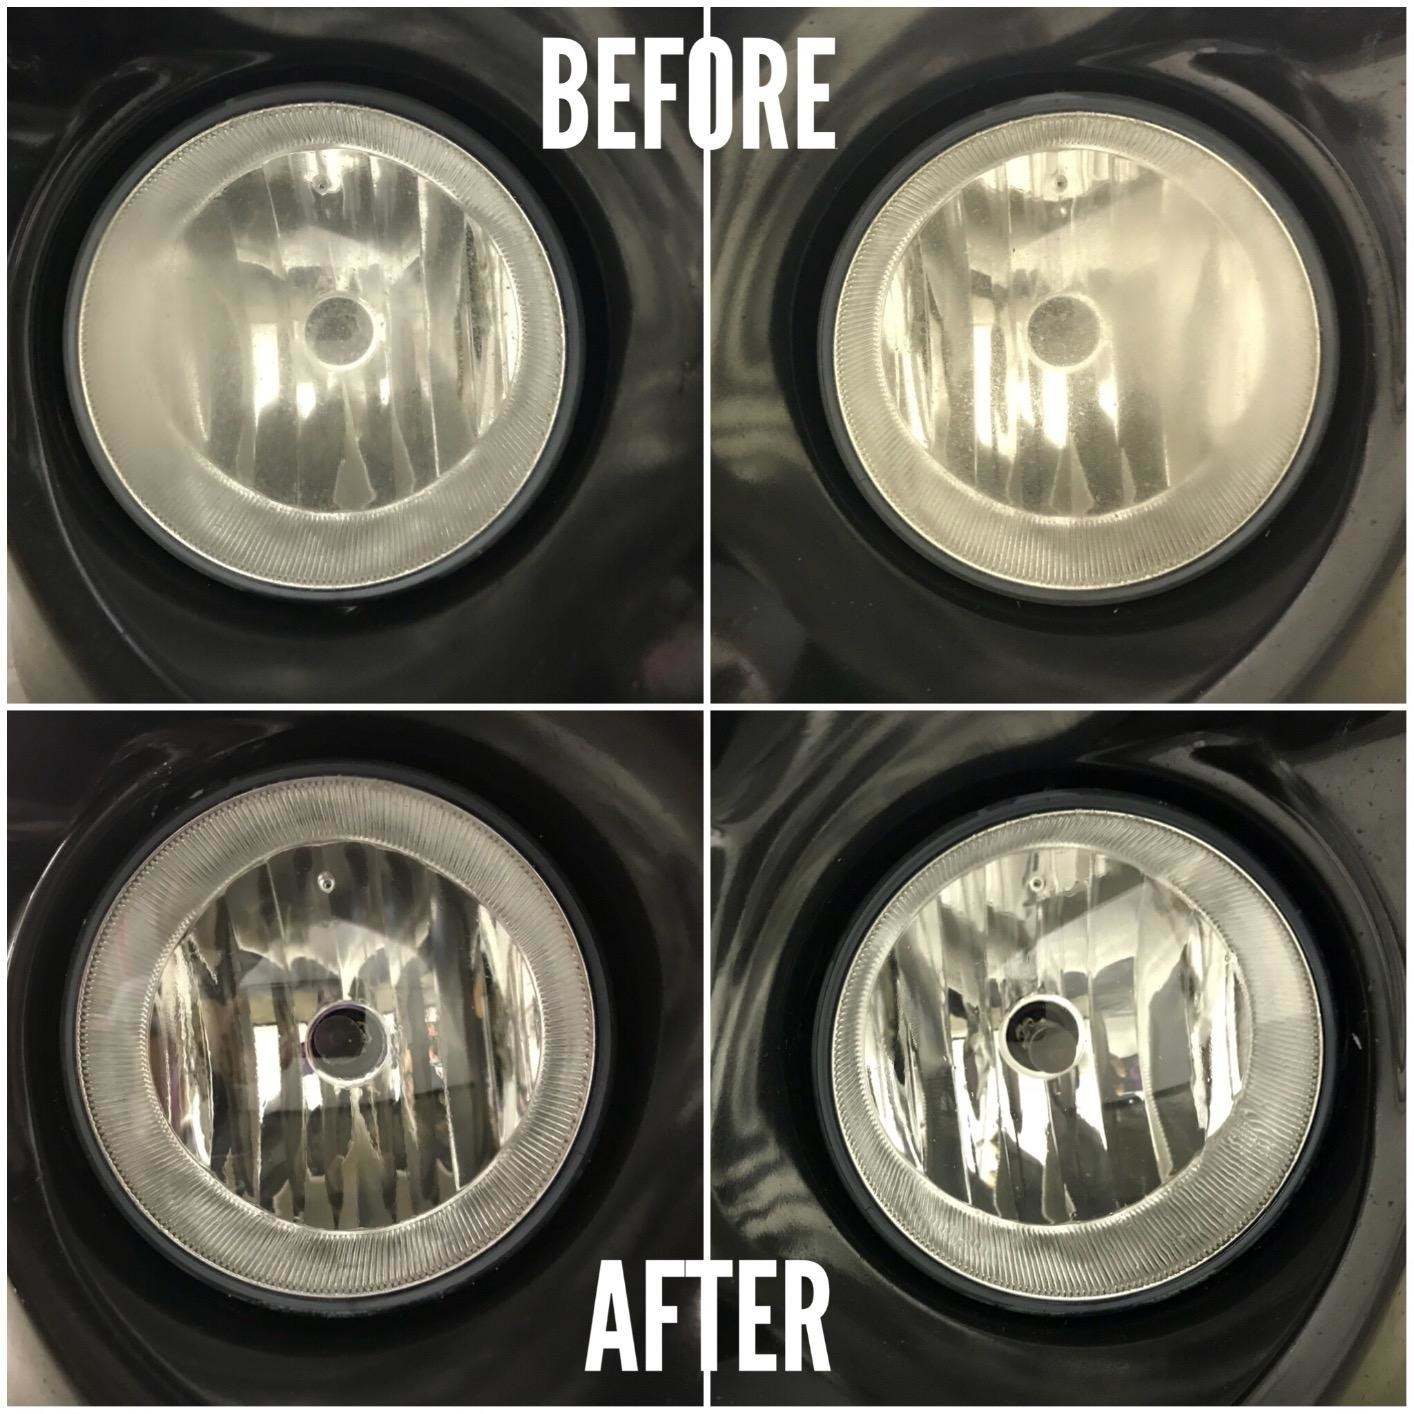 Close-ups showing once-dirty headlights looking cleaner